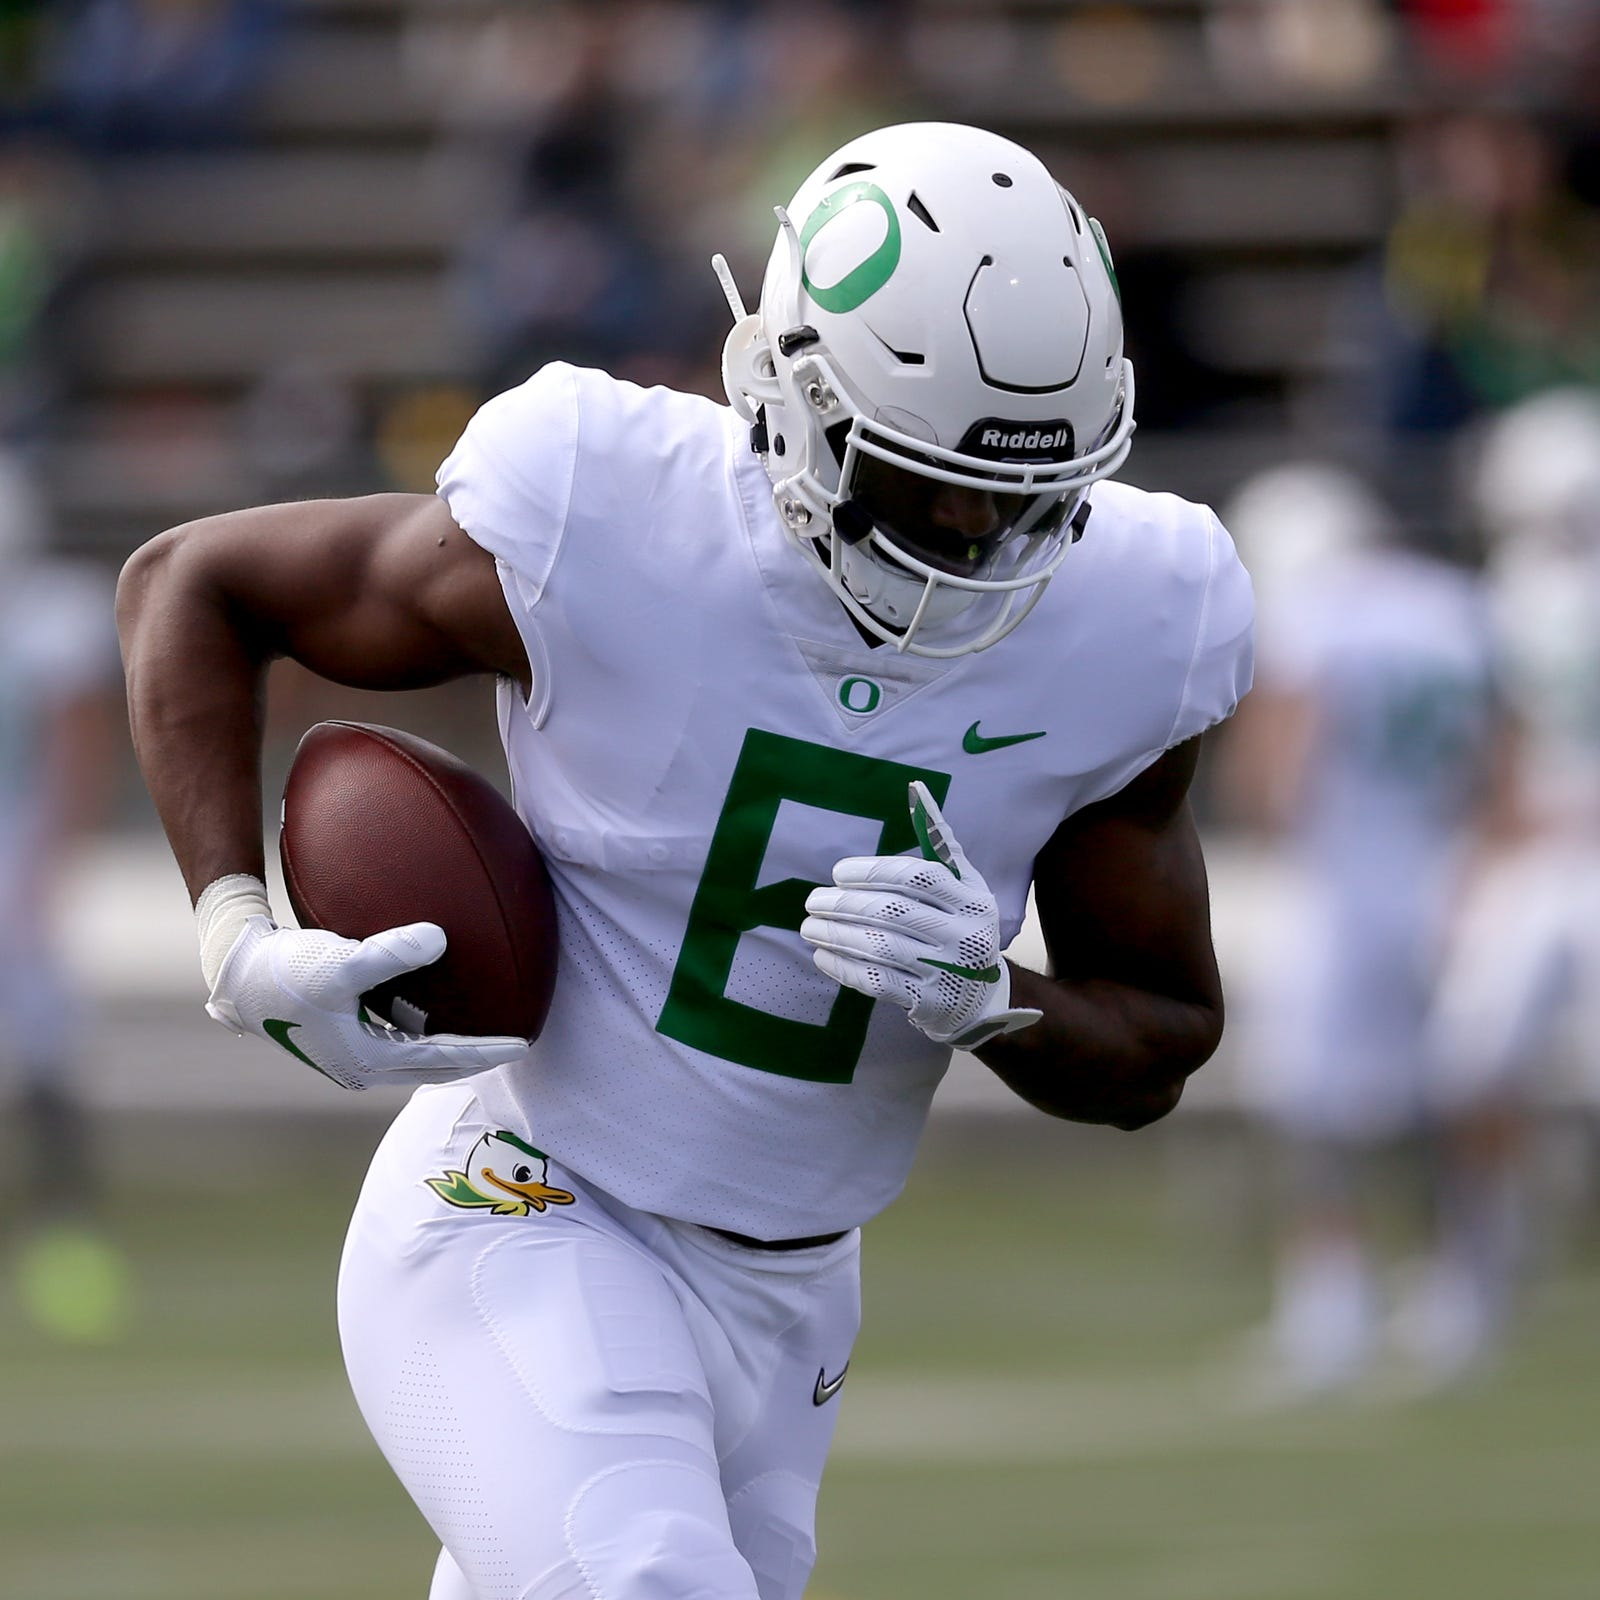 Oregon Ducks football: 3 takeaways from Hillsboro scrimmage